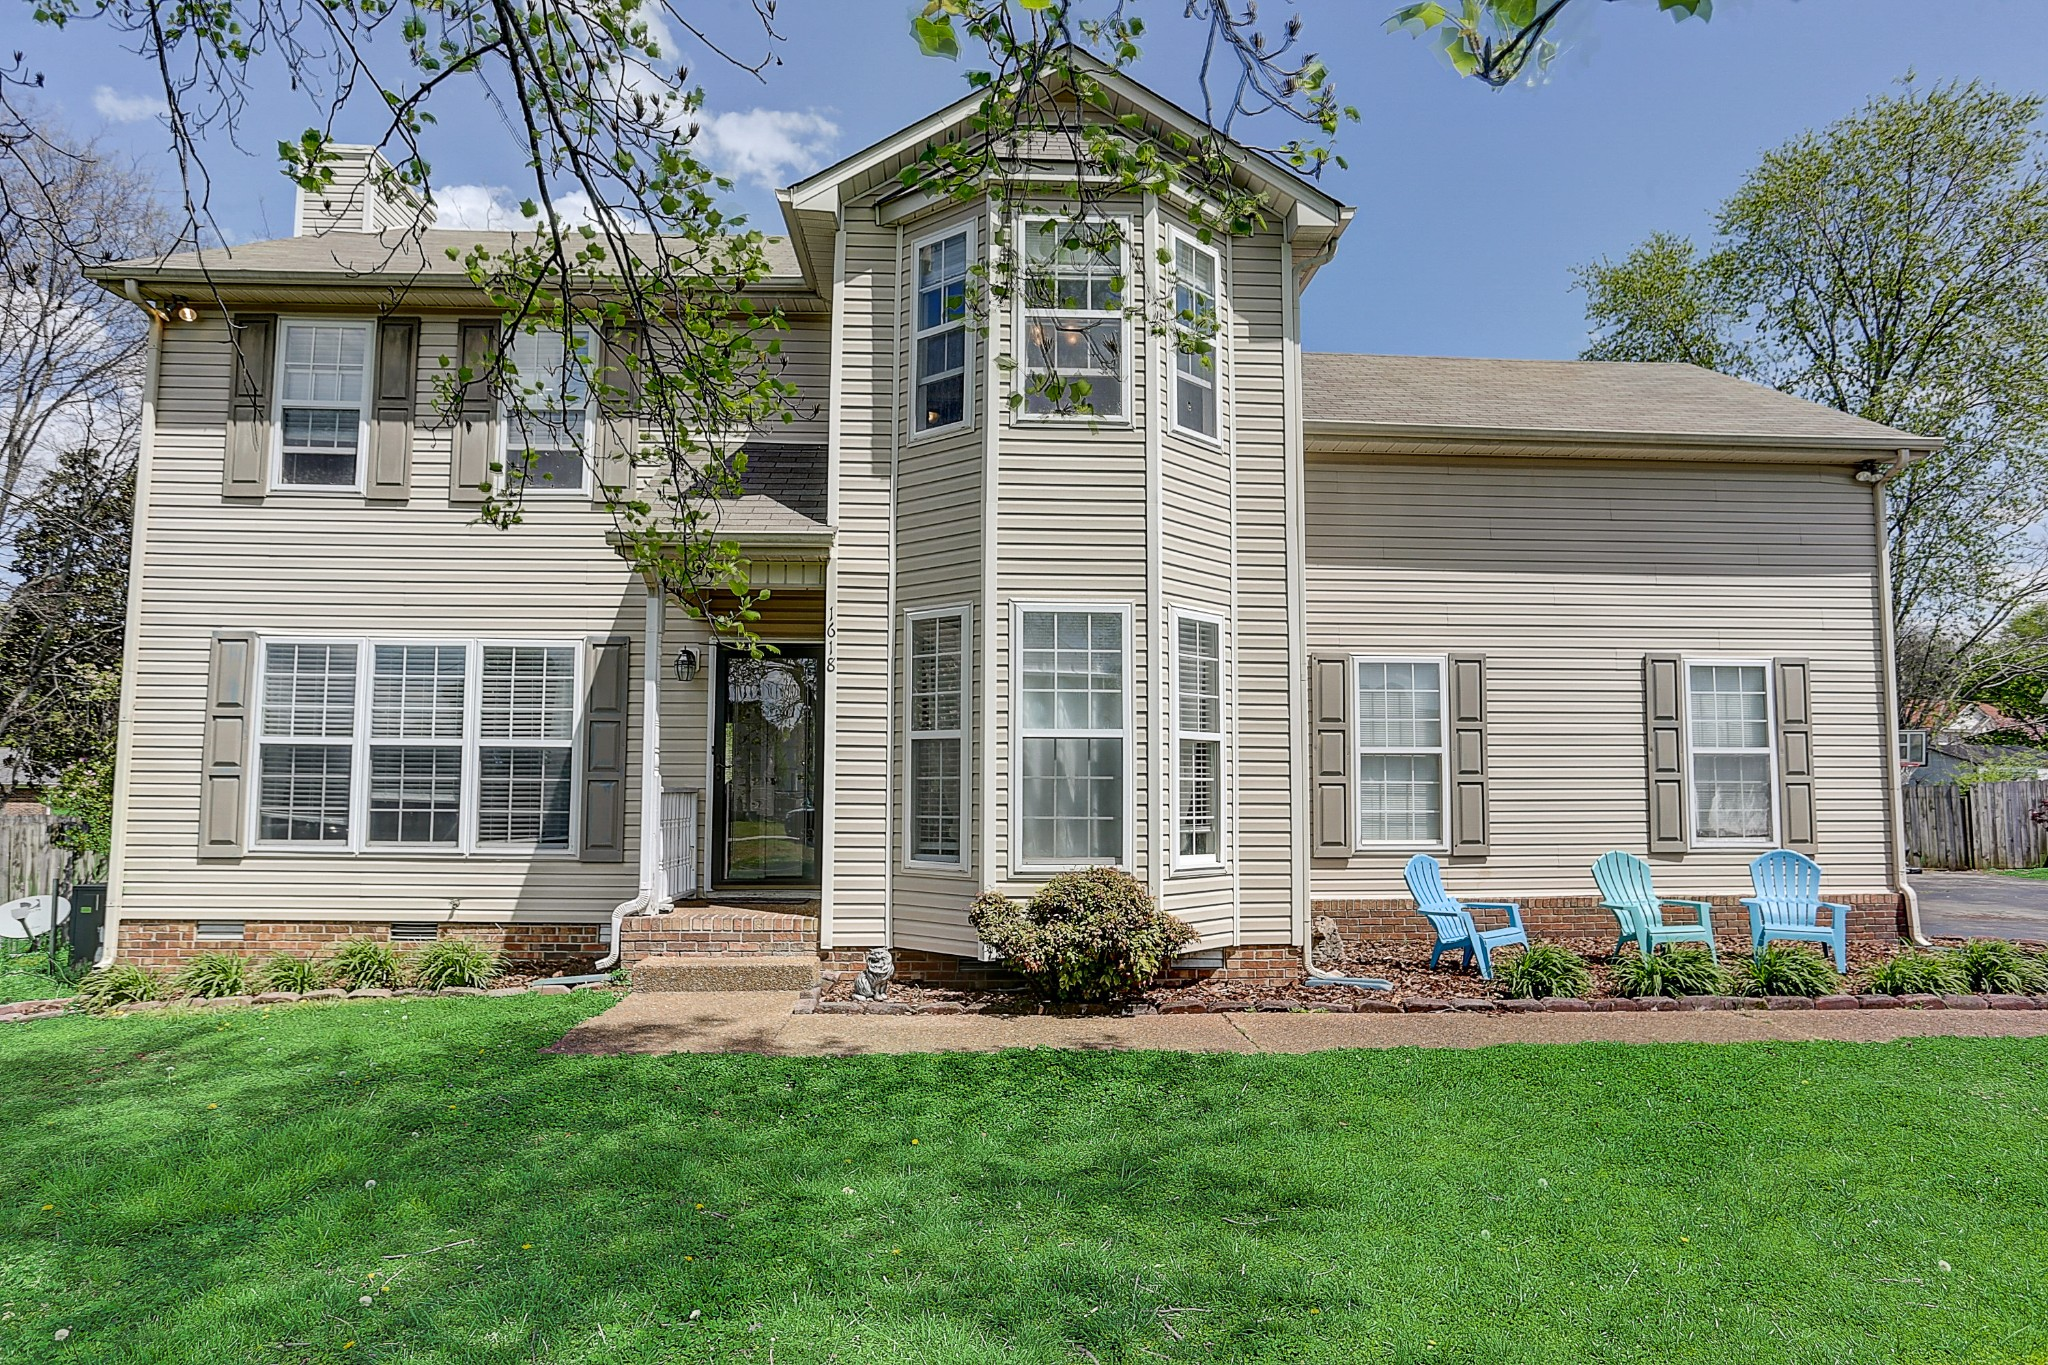 Beautiful home in a peaceful neighborhood that is ready and waiting for you!  Family room features a gas fireplace with brick hearth.  Spacious kitchen has stainless steel appliances.  All bedrooms are upstairs.  The Largest bedroom could also be used as a bonus/flex room.  Mature landscaping, large deck with a fenced in backyard.  Conveniently located just minutes from Columbia State Community College, parks, shopping and restaurants.  No HOA!  Hurry, this one won't last.